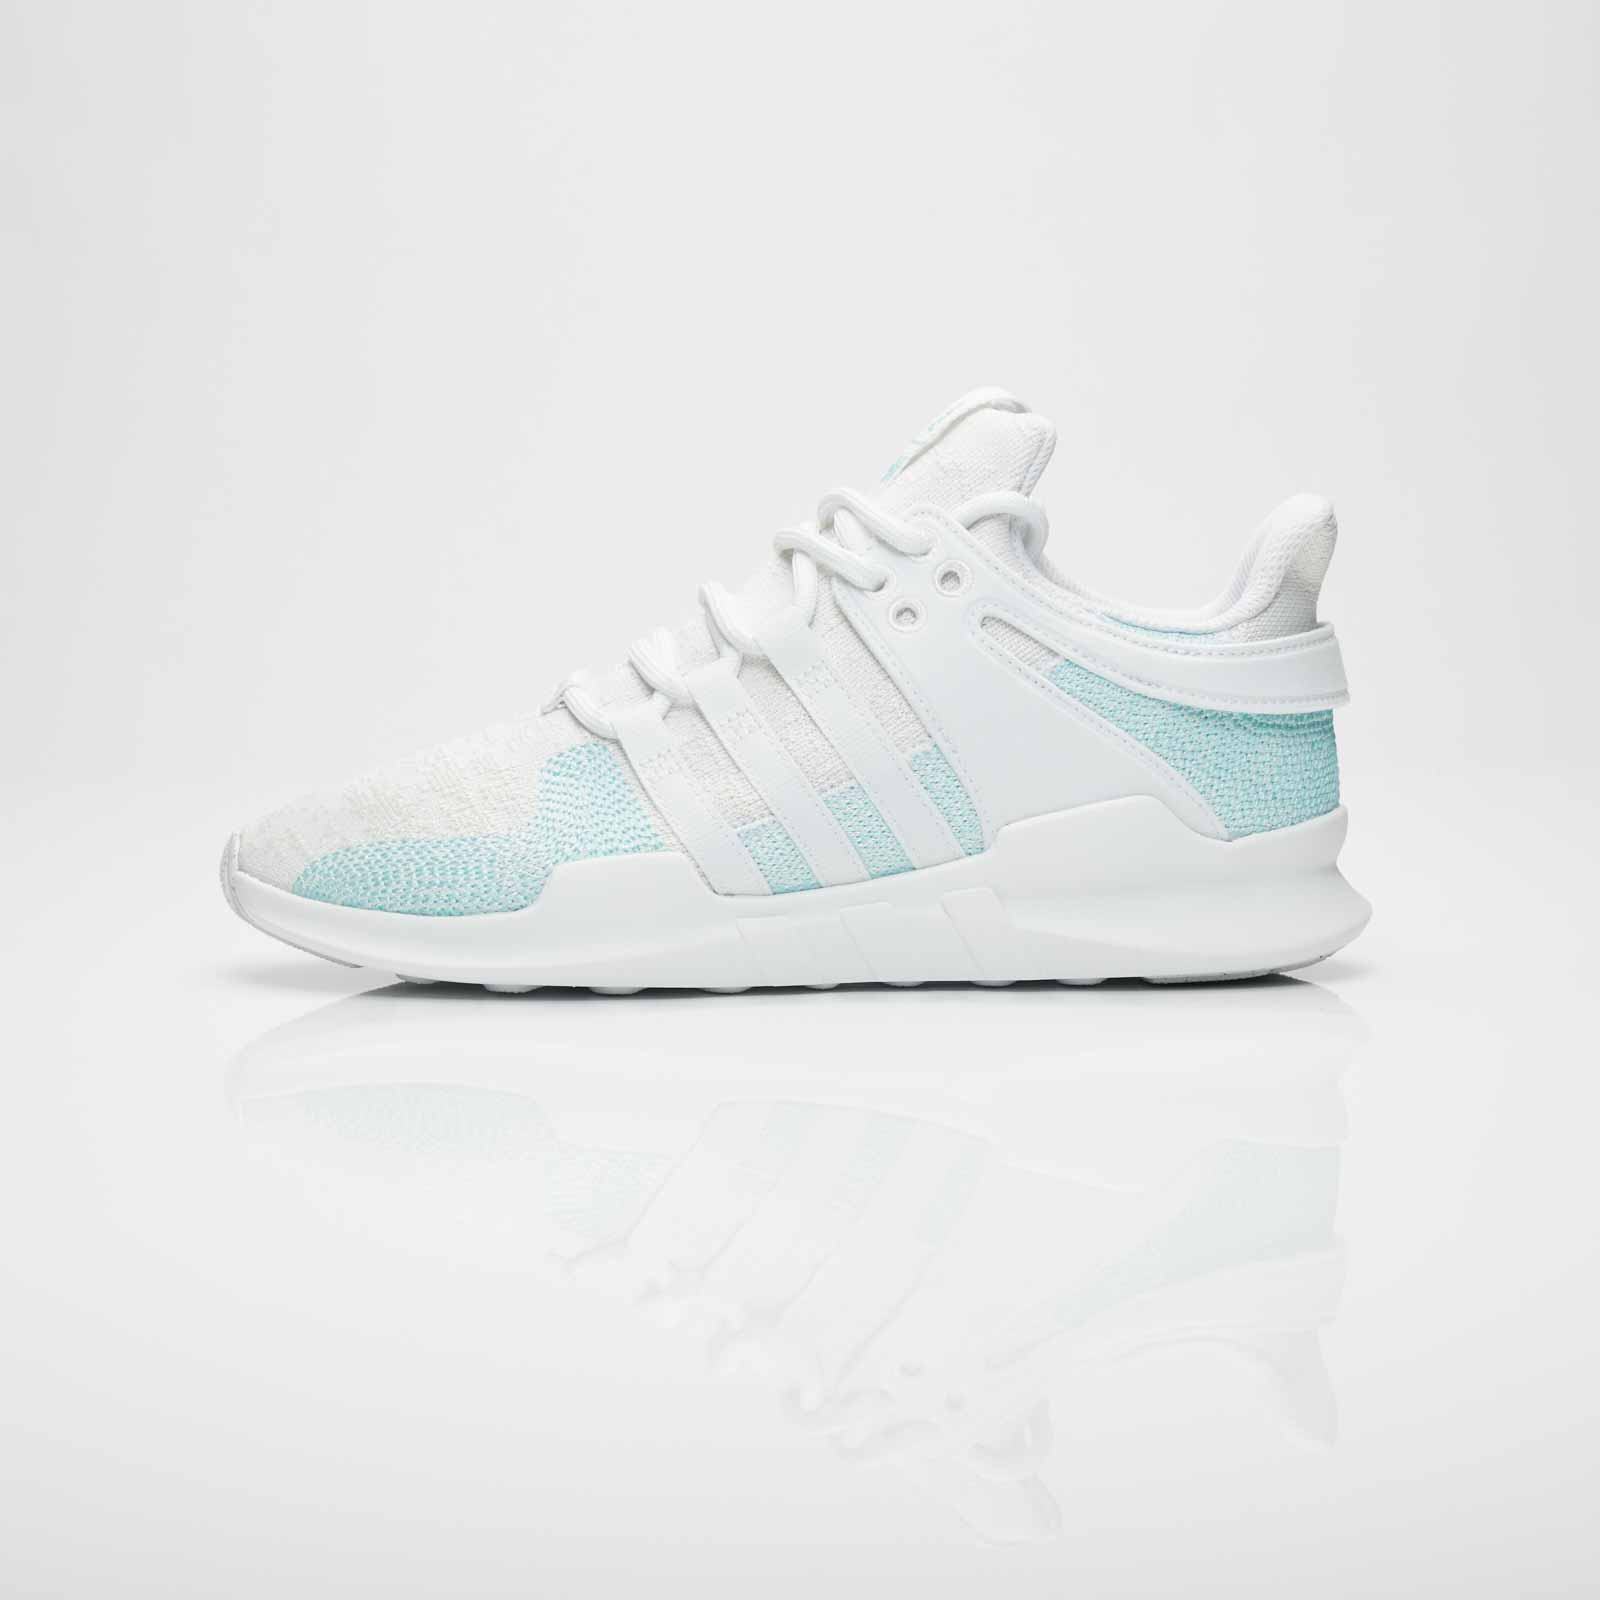 adidas EQT Support ADV CK Parley - Ac7804 - Sneakersnstuff ... f63088467